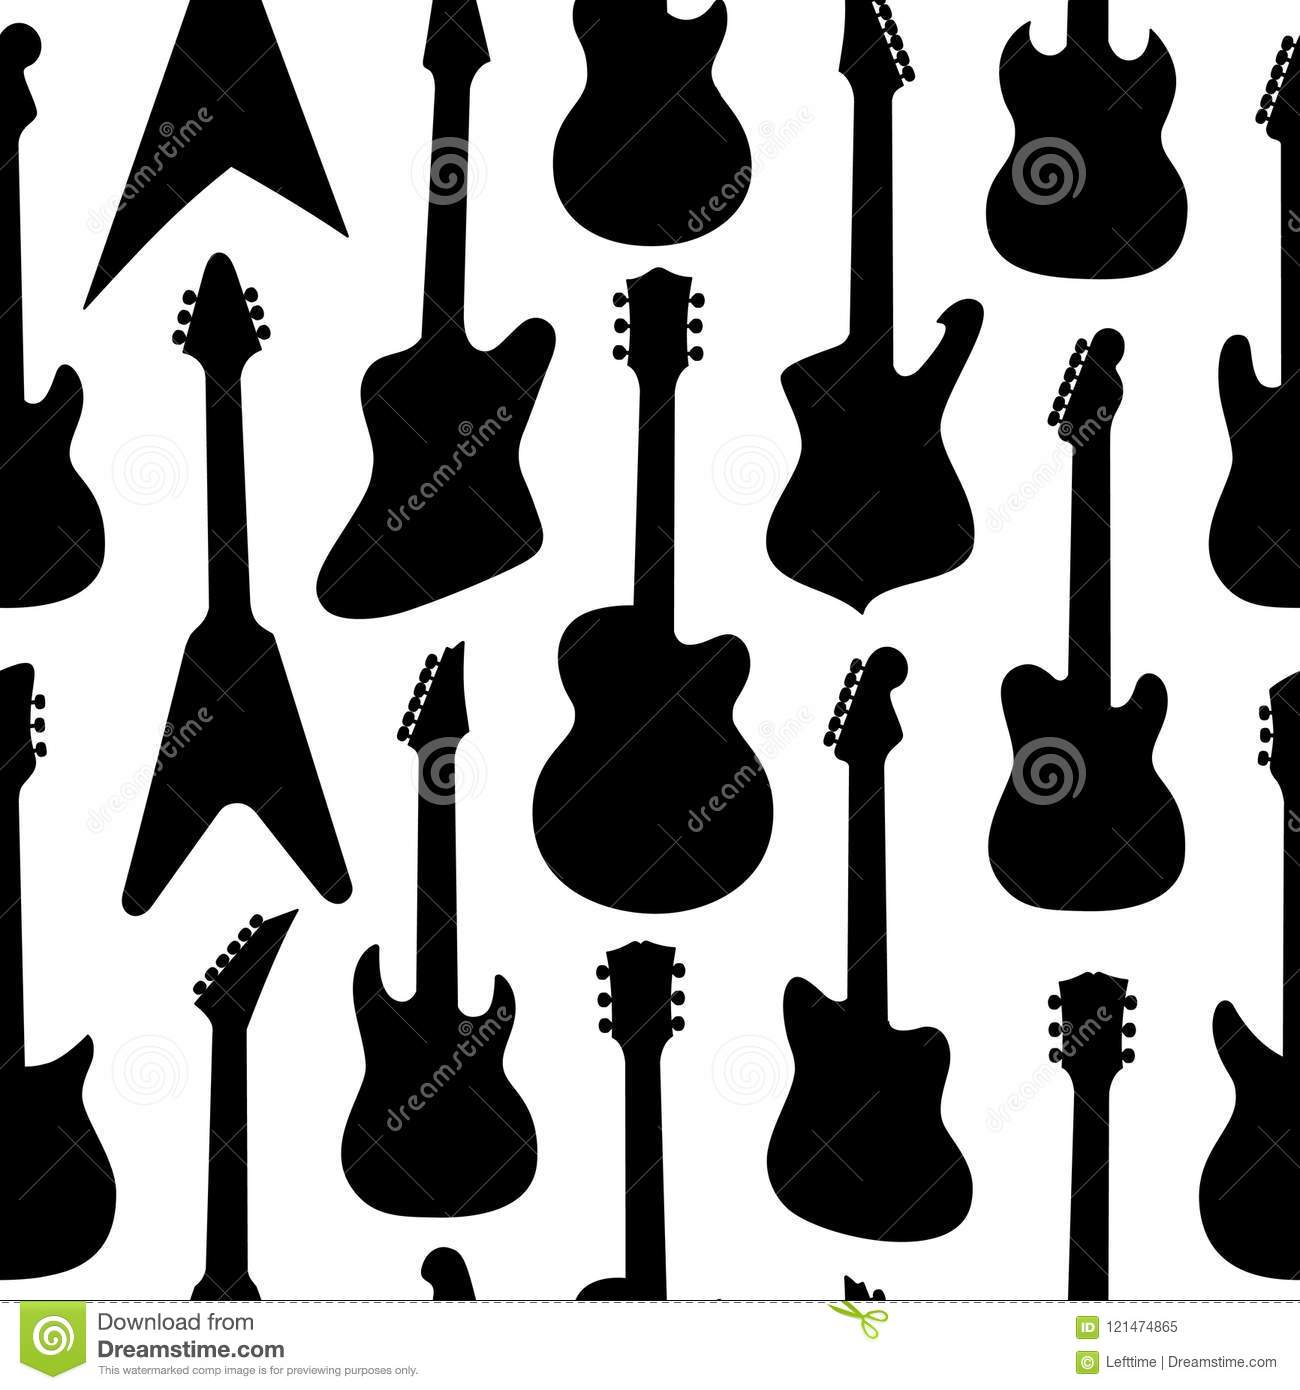 black and white colors pattern with different shapes guitars stock vector illustration of. Black Bedroom Furniture Sets. Home Design Ideas